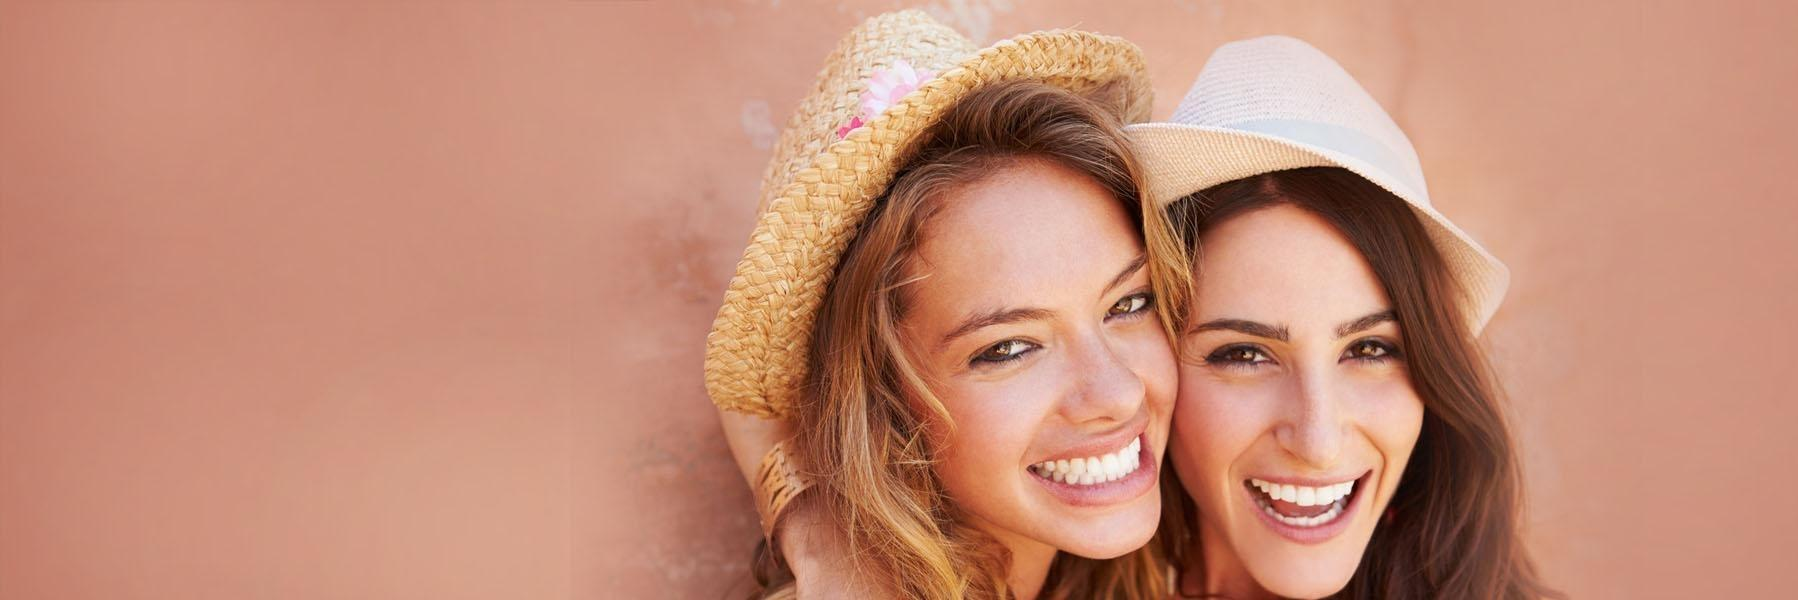 Two women laughing l Cosmetic Dentist Doylestown PA